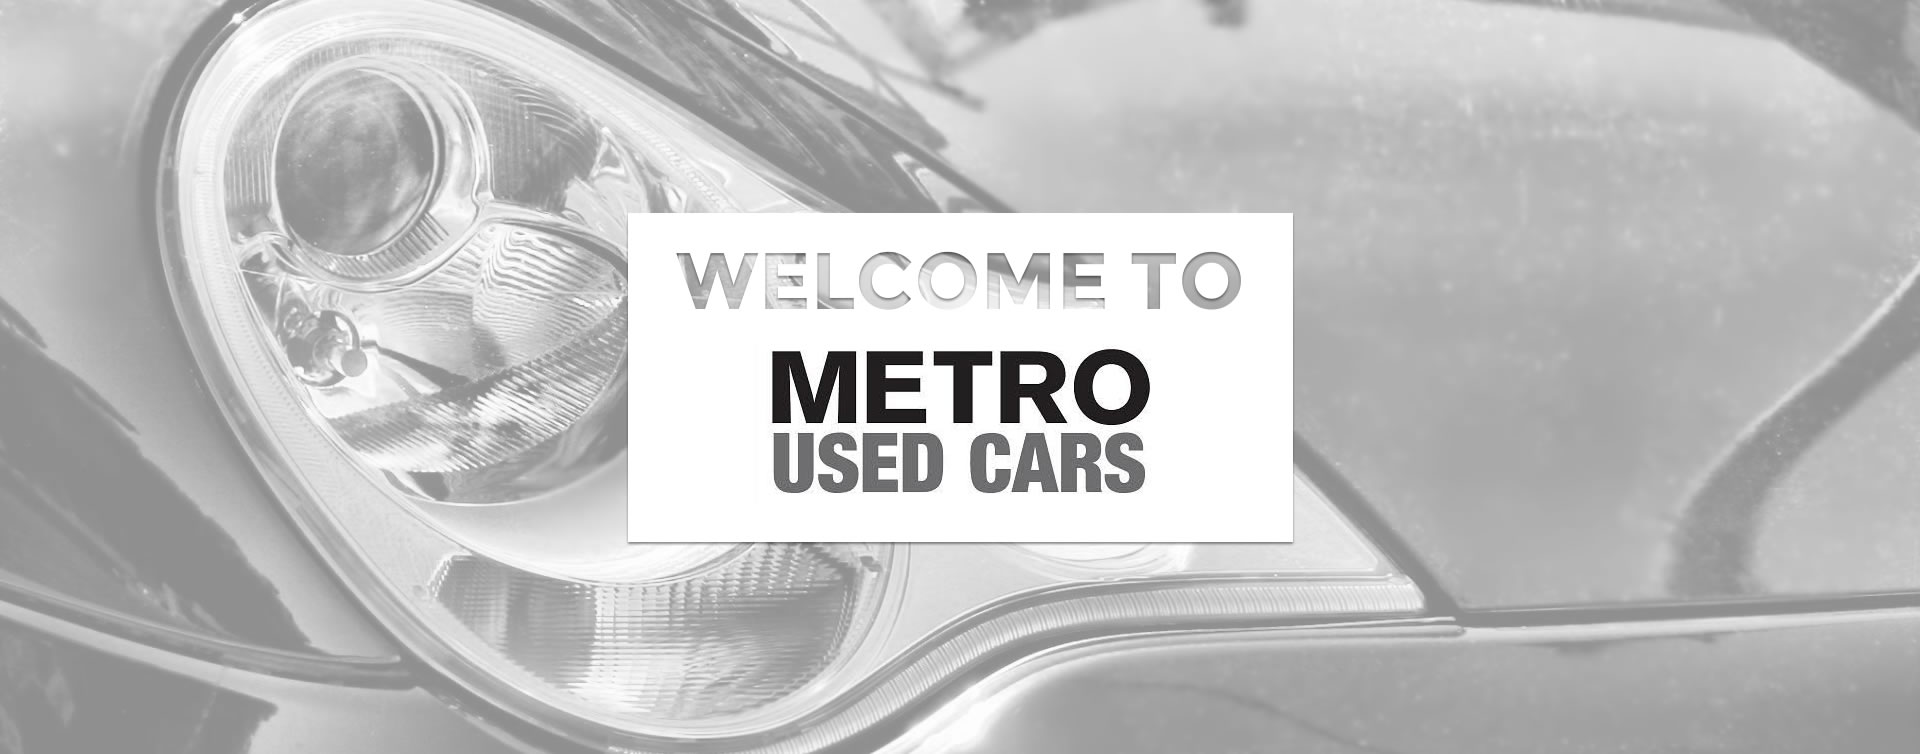 Welcome to Metro Used Cars in Brisbane.